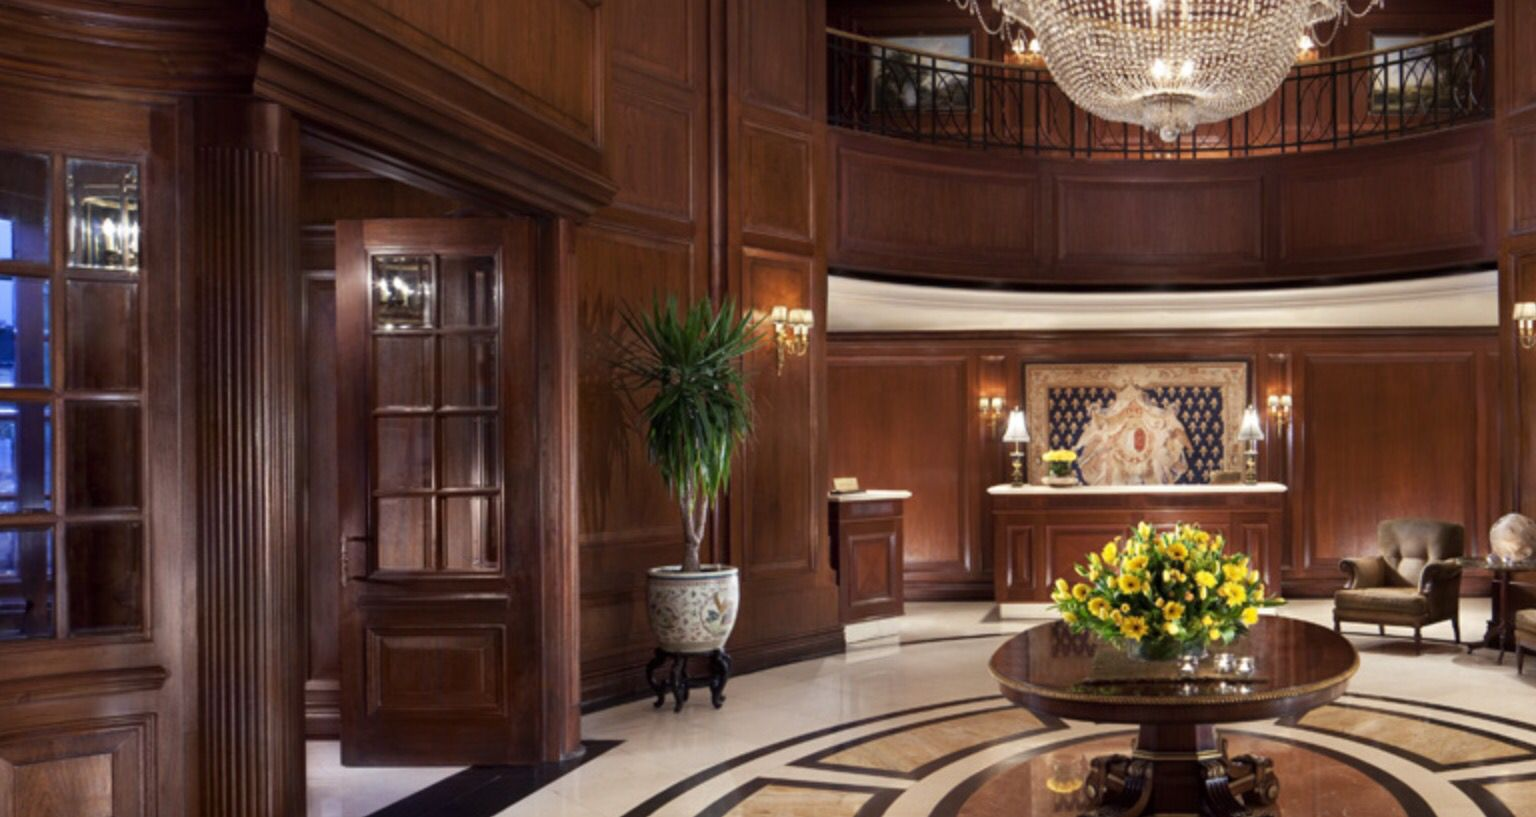 Lobby Of The Ritz Carlton Hotel In Santiago Chile Large Round